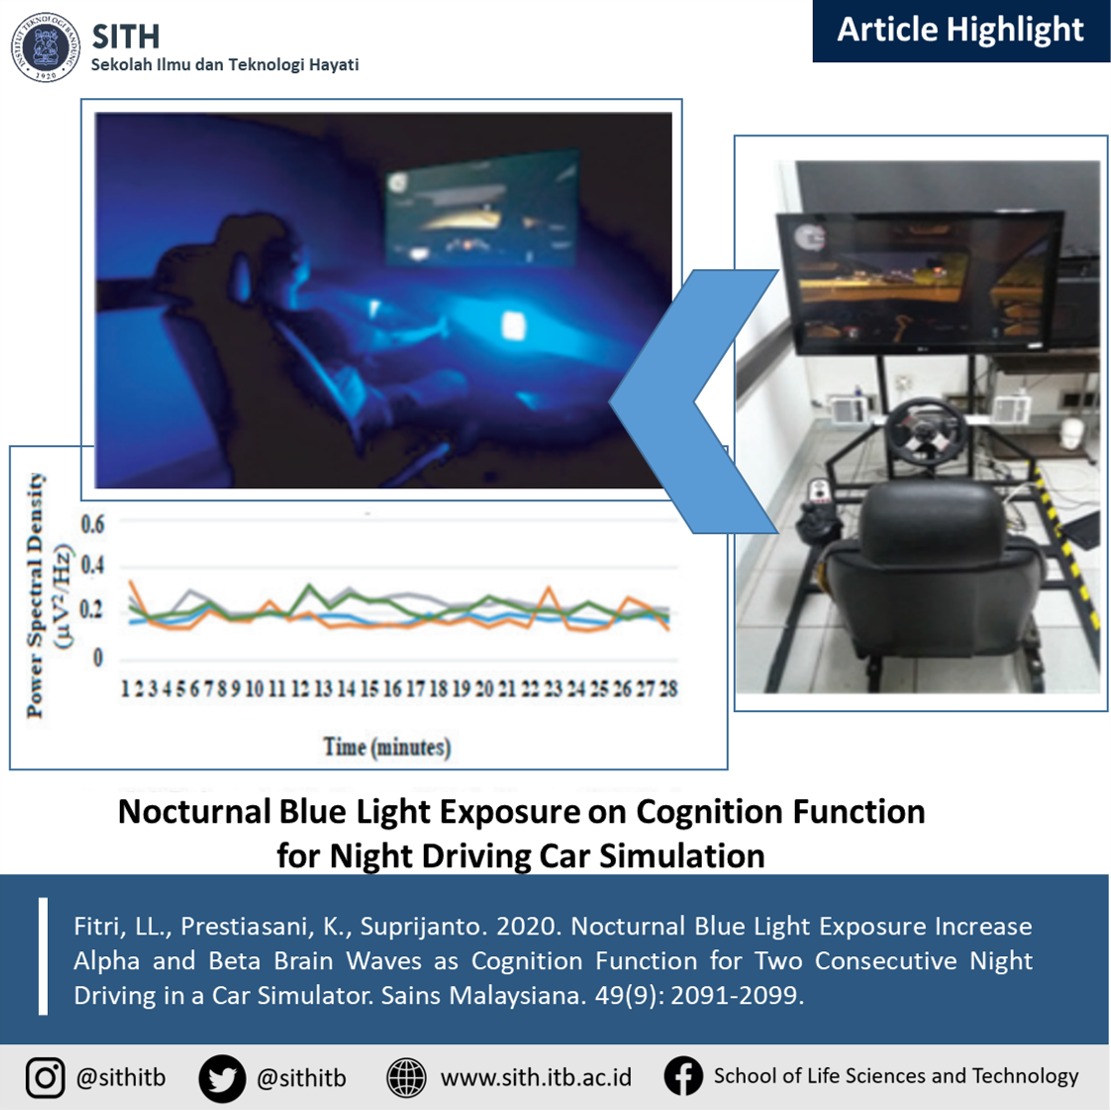 Nocturnal Blue Light Exposure Increase Alpha and Beta Brain Waves as Cognition Function for Two Consecutive Night Driving in a Car Simulator